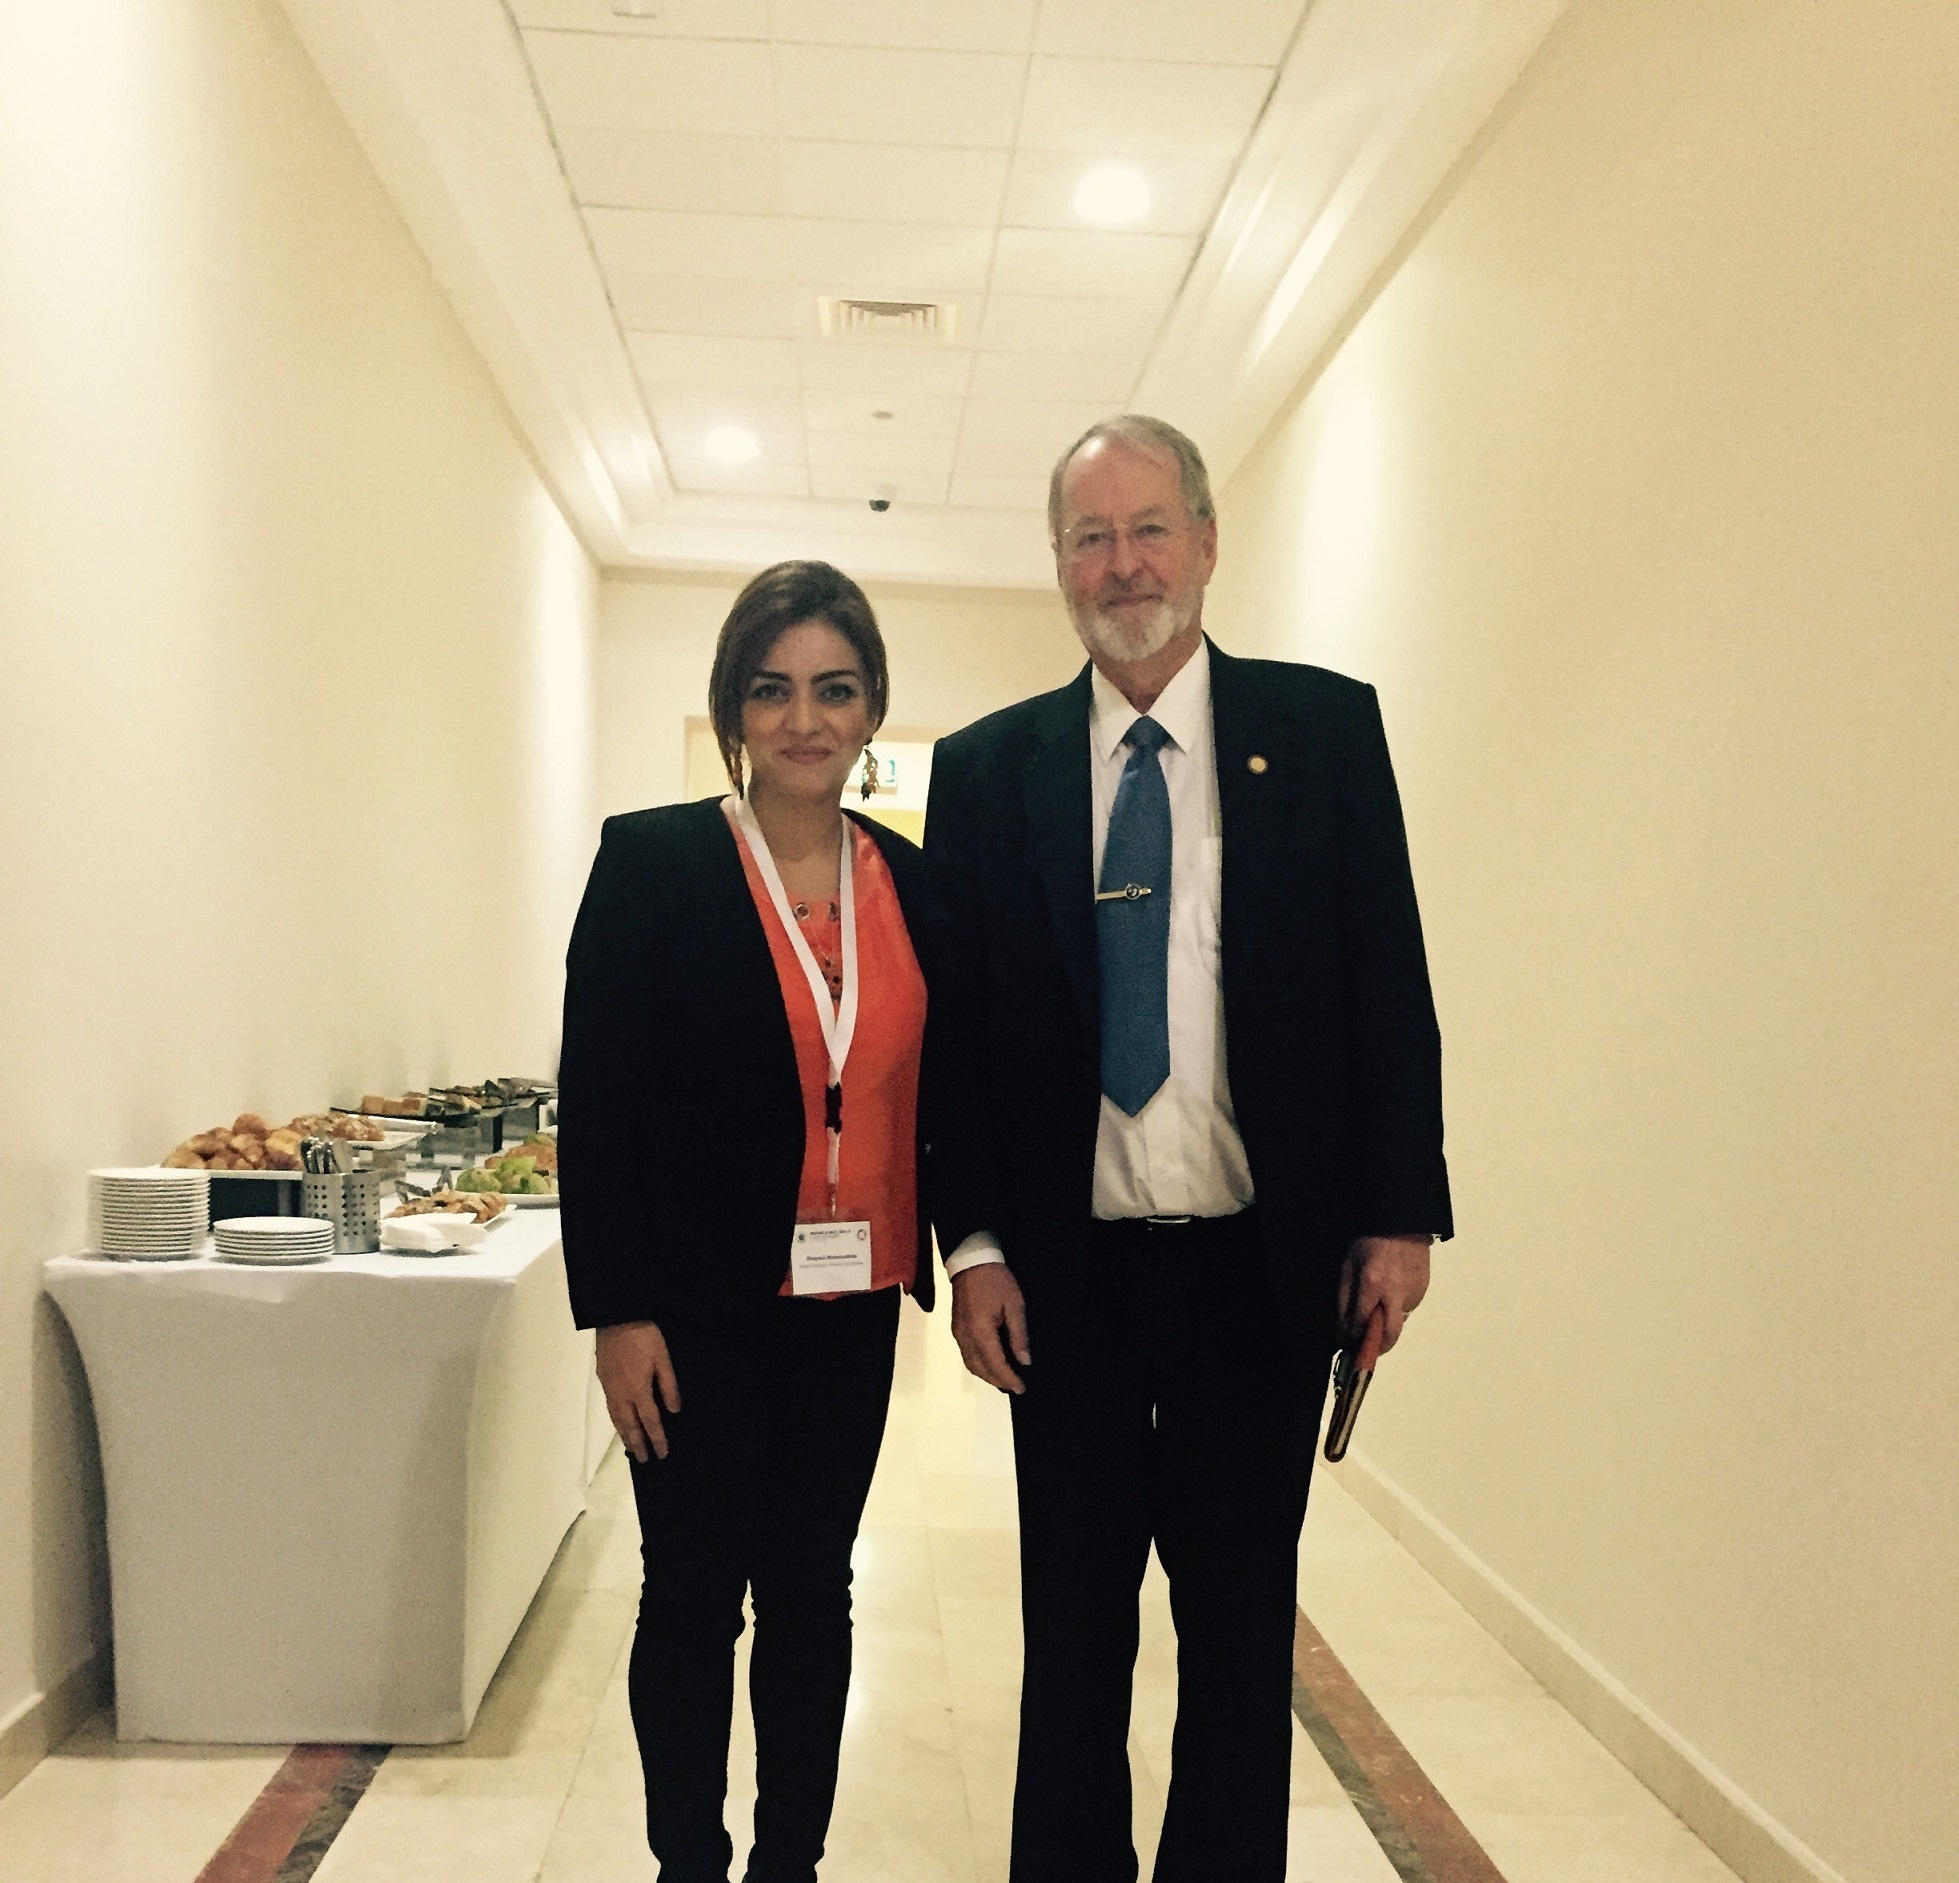 Khazar University Staff Member at International Event